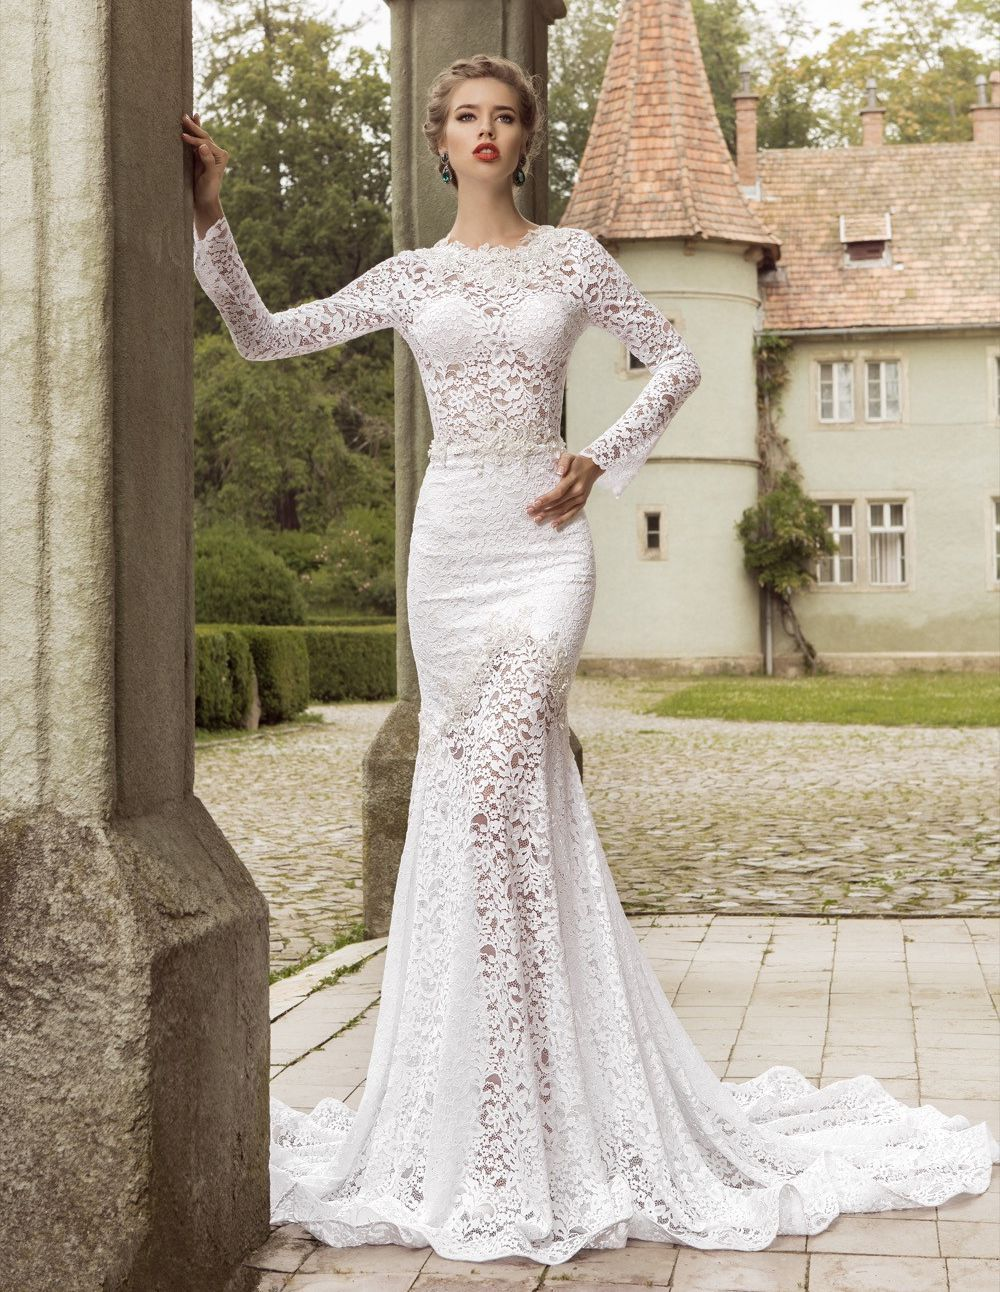 Crew Neck Wedding Dress Of Elegant Mermaid Lace Wedding Dresses 2016 Crew Neck Sheer